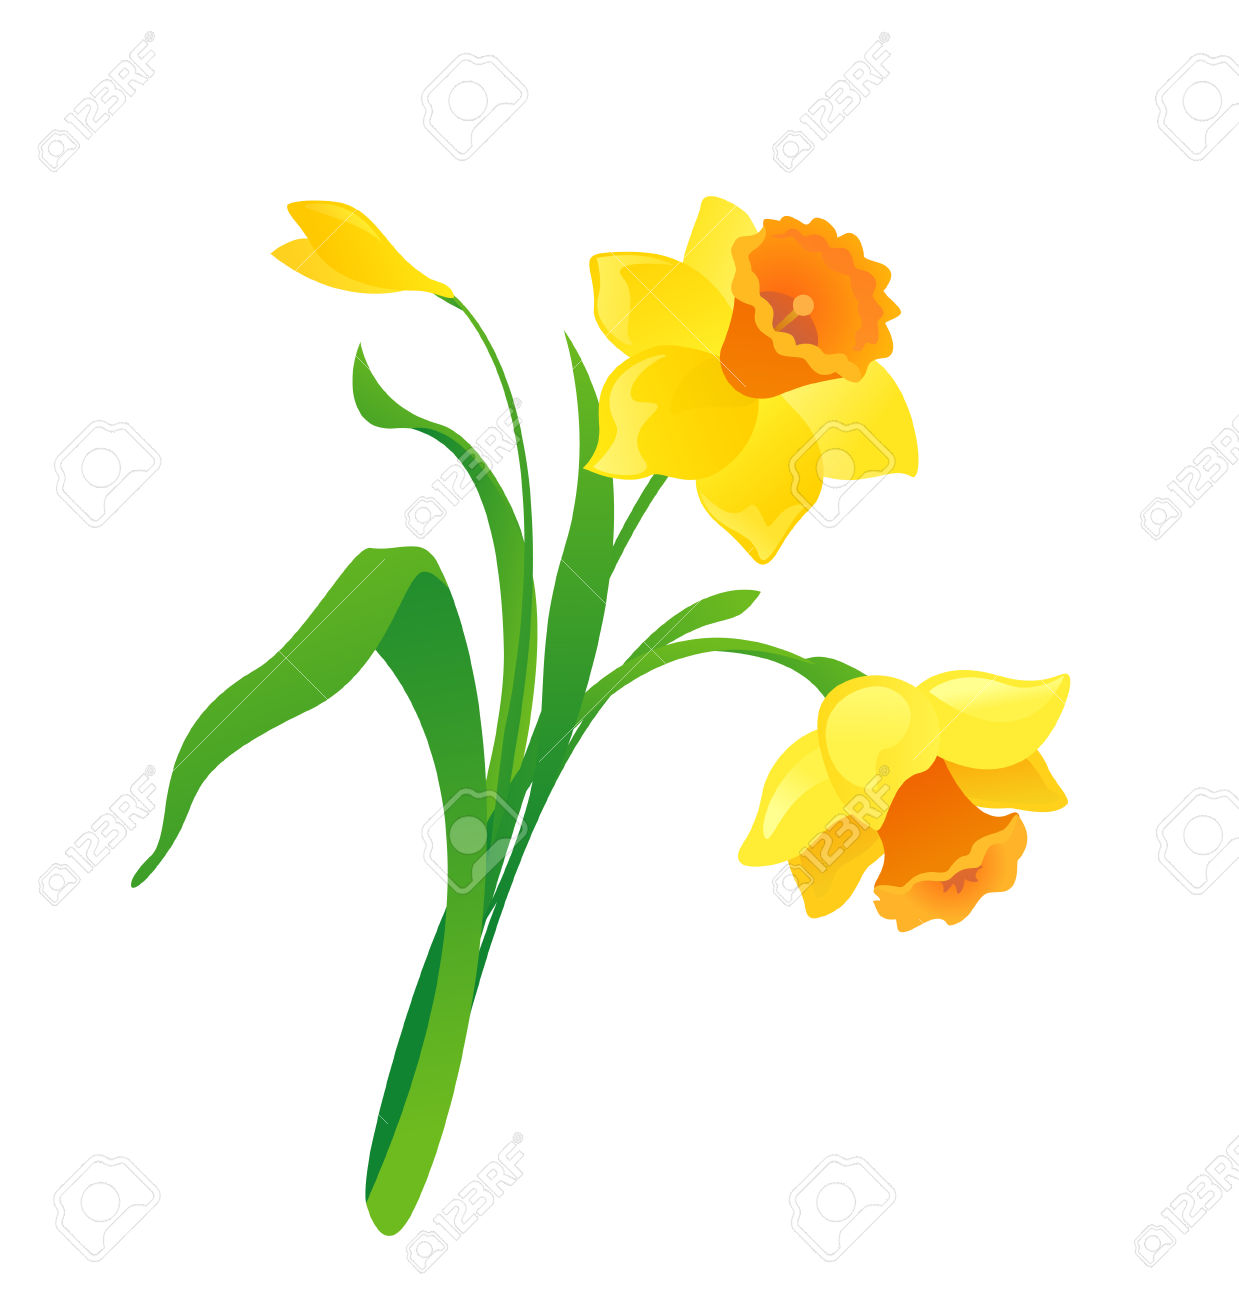 Daffodils clipart » Clipart Station.